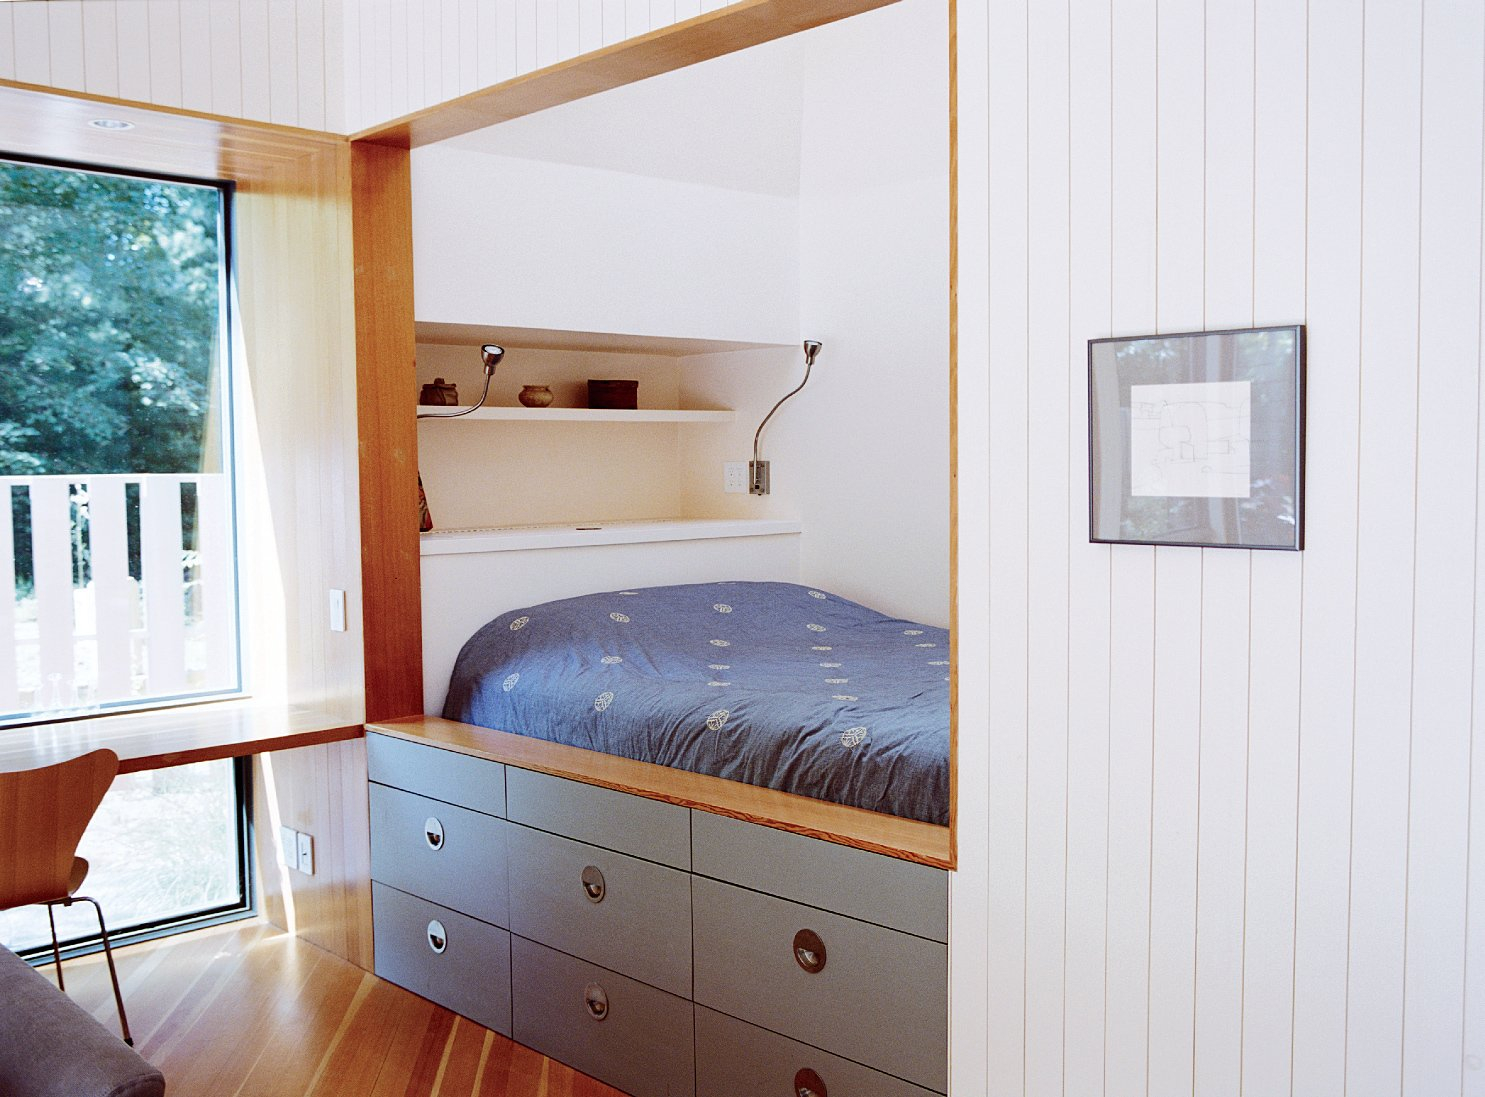 Key to the space-efficient floor plan is a strategically placed set of recessed areas, includingthe sleeping nook and writing desk. Tagged: Bedroom, Shelves, Medium Hardwood Floor, and Bed.  Photo 4 of 12 in This Tiny New England Cottage Is a No-Frills Weekend Hideaway